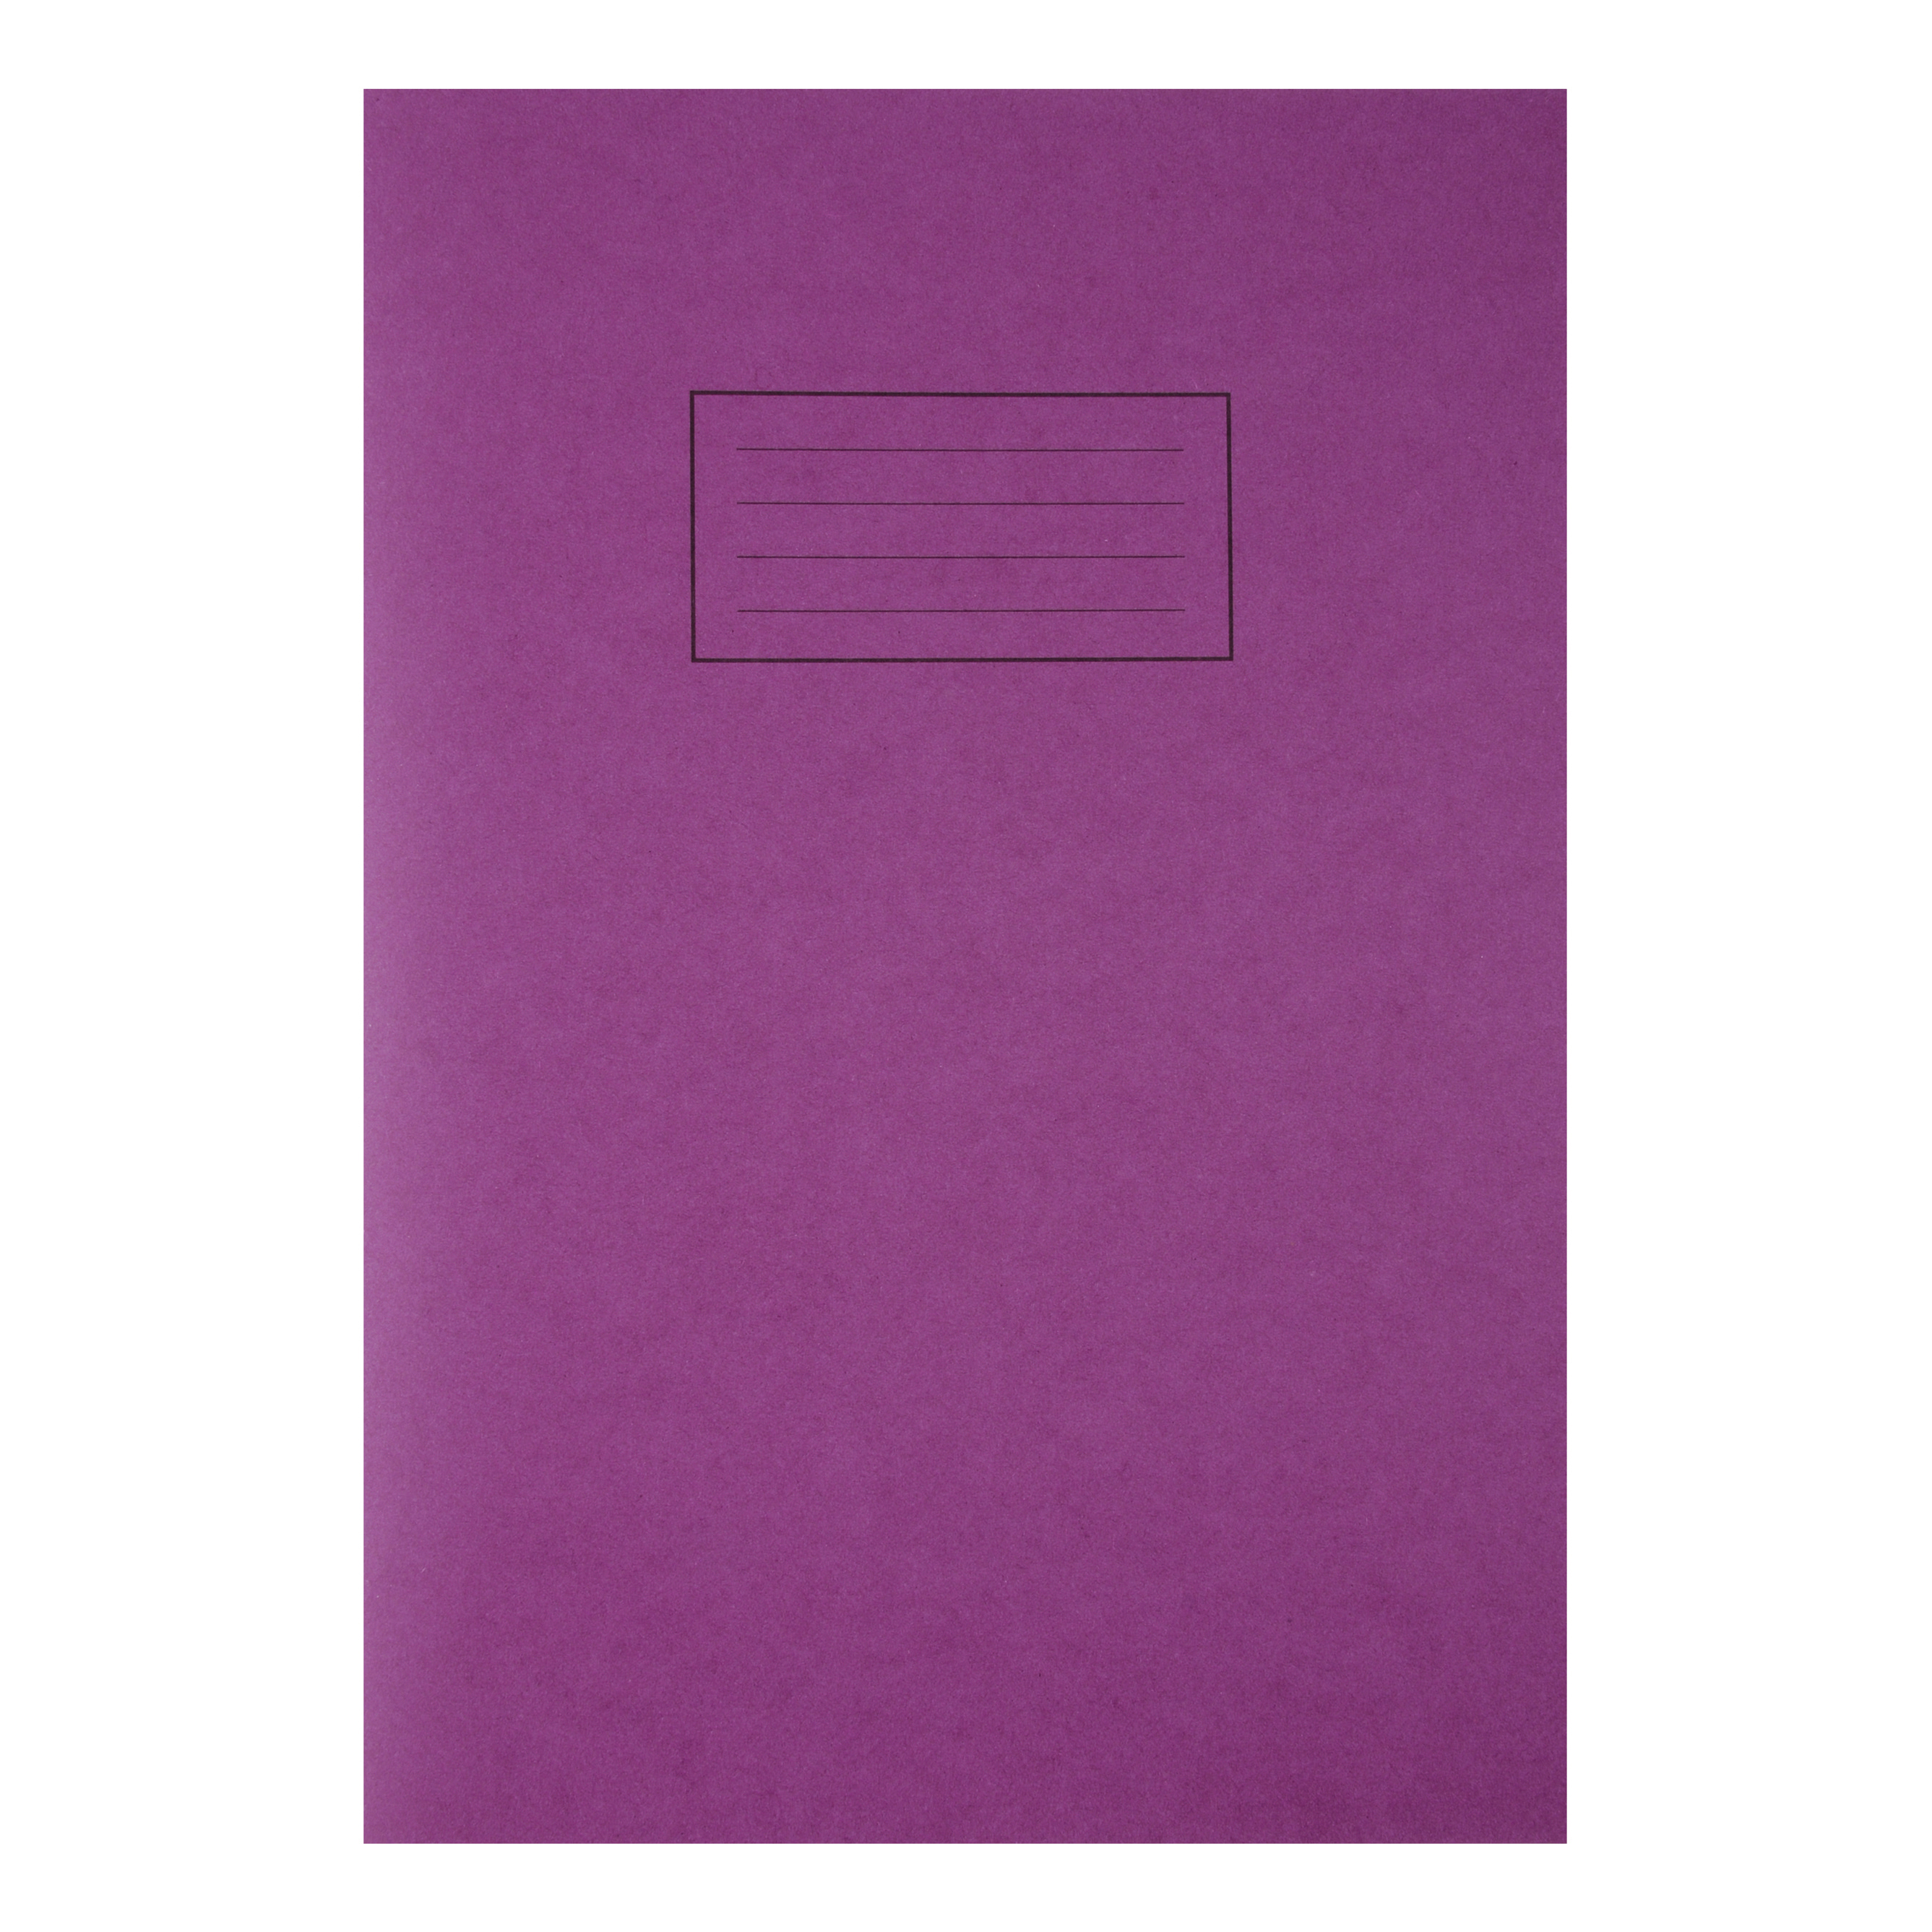 Exercise Books Silvine Exercise Book Ruled and Margin 80 Pages 75gsm A4 Purple Ref EX111 Pack 10